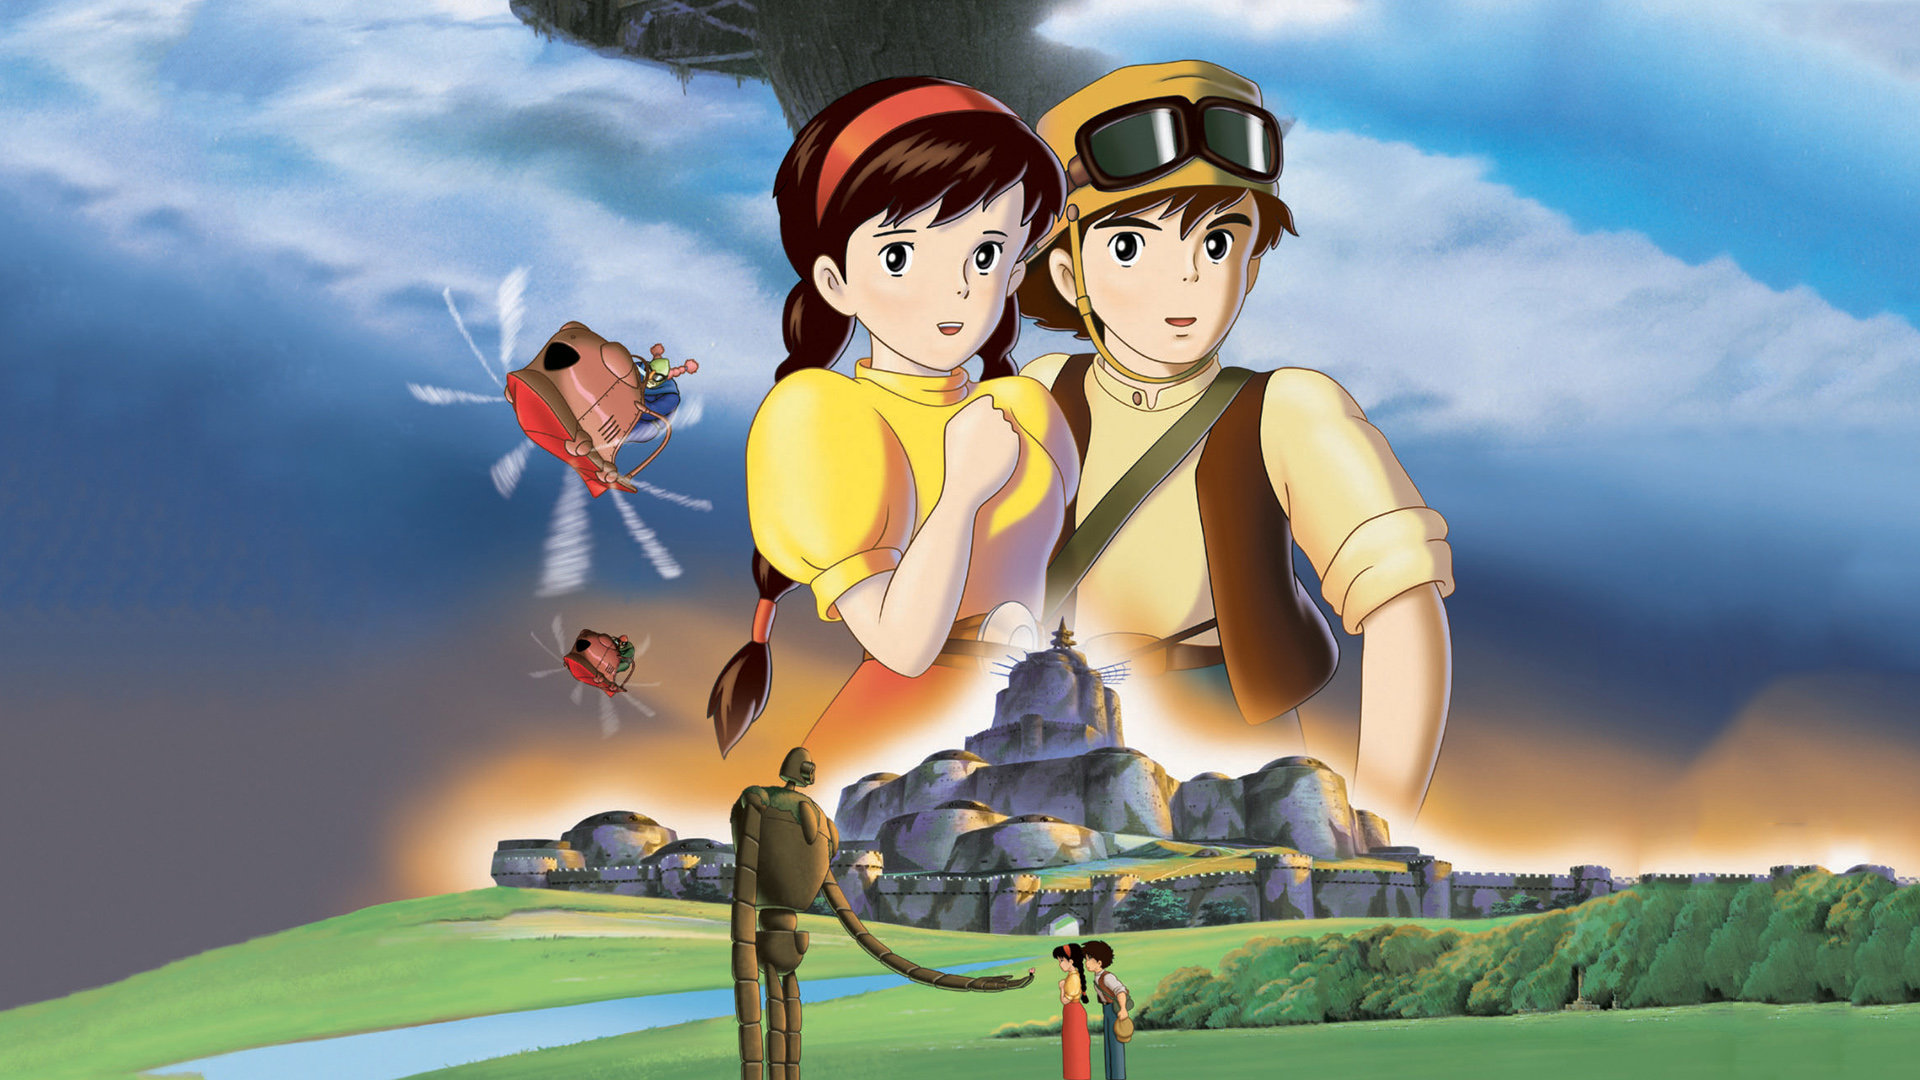 Download full hd Laputa: Castle In The Sky PC wallpaper ID:186135 for free